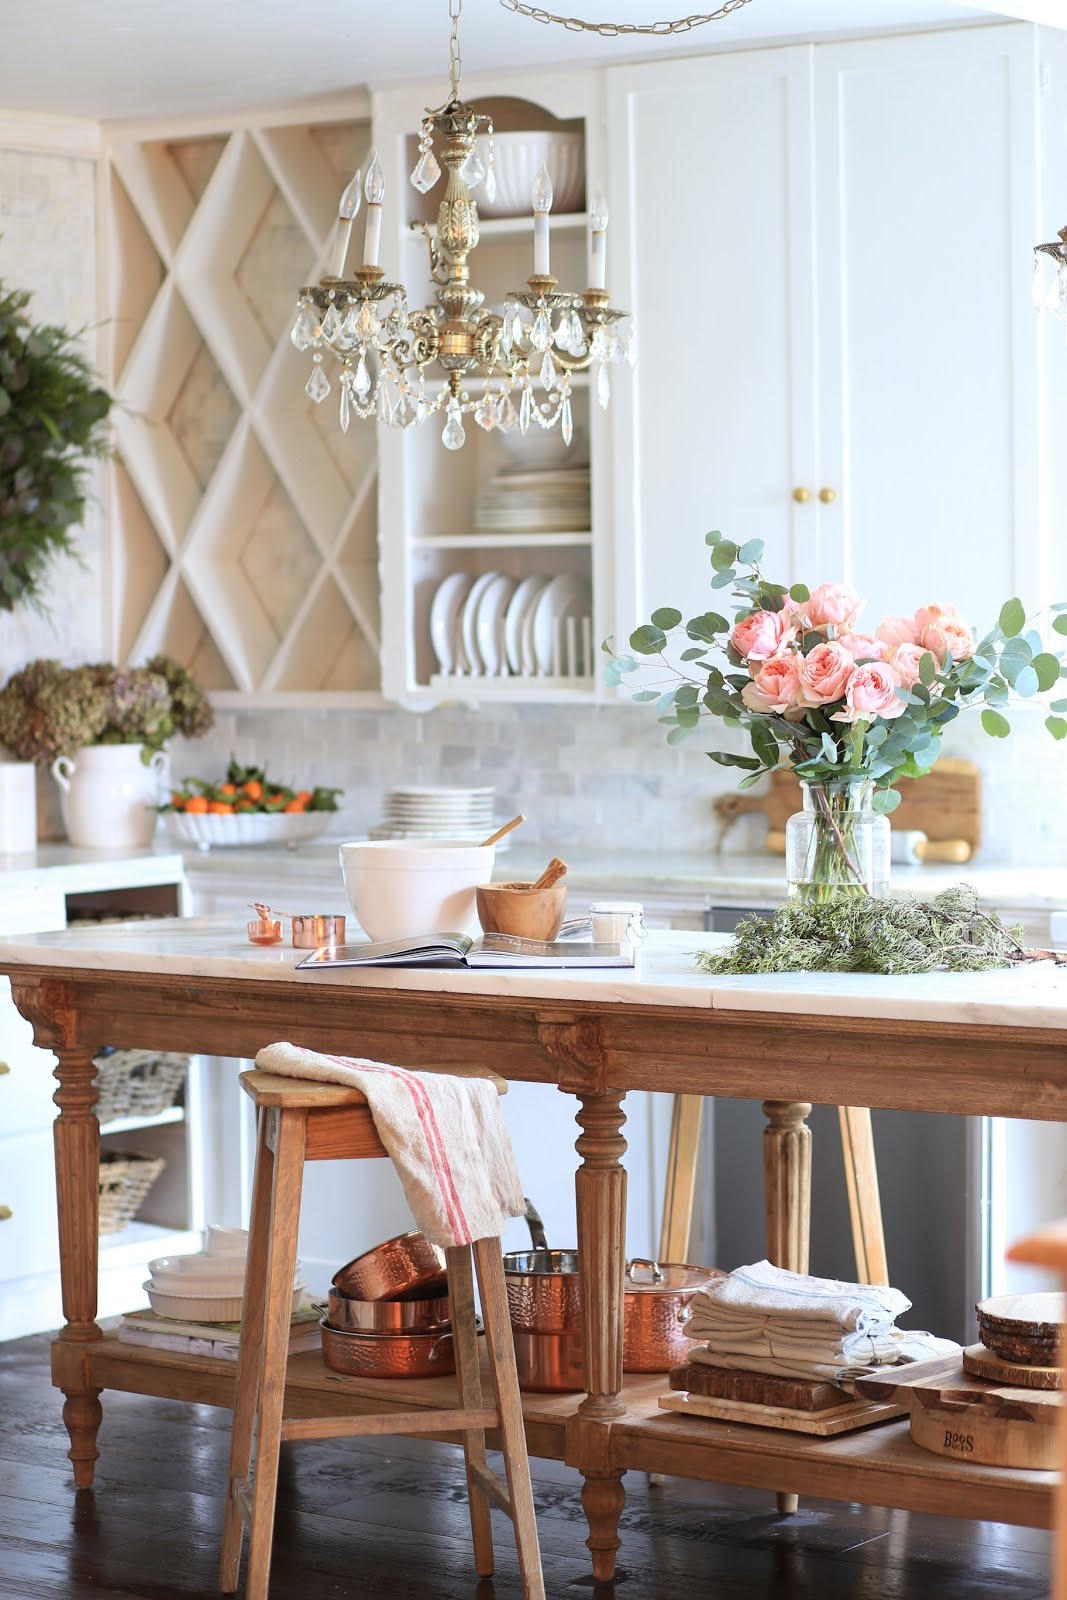 French Country Fridays A Vintage Inspired Kitchen Island